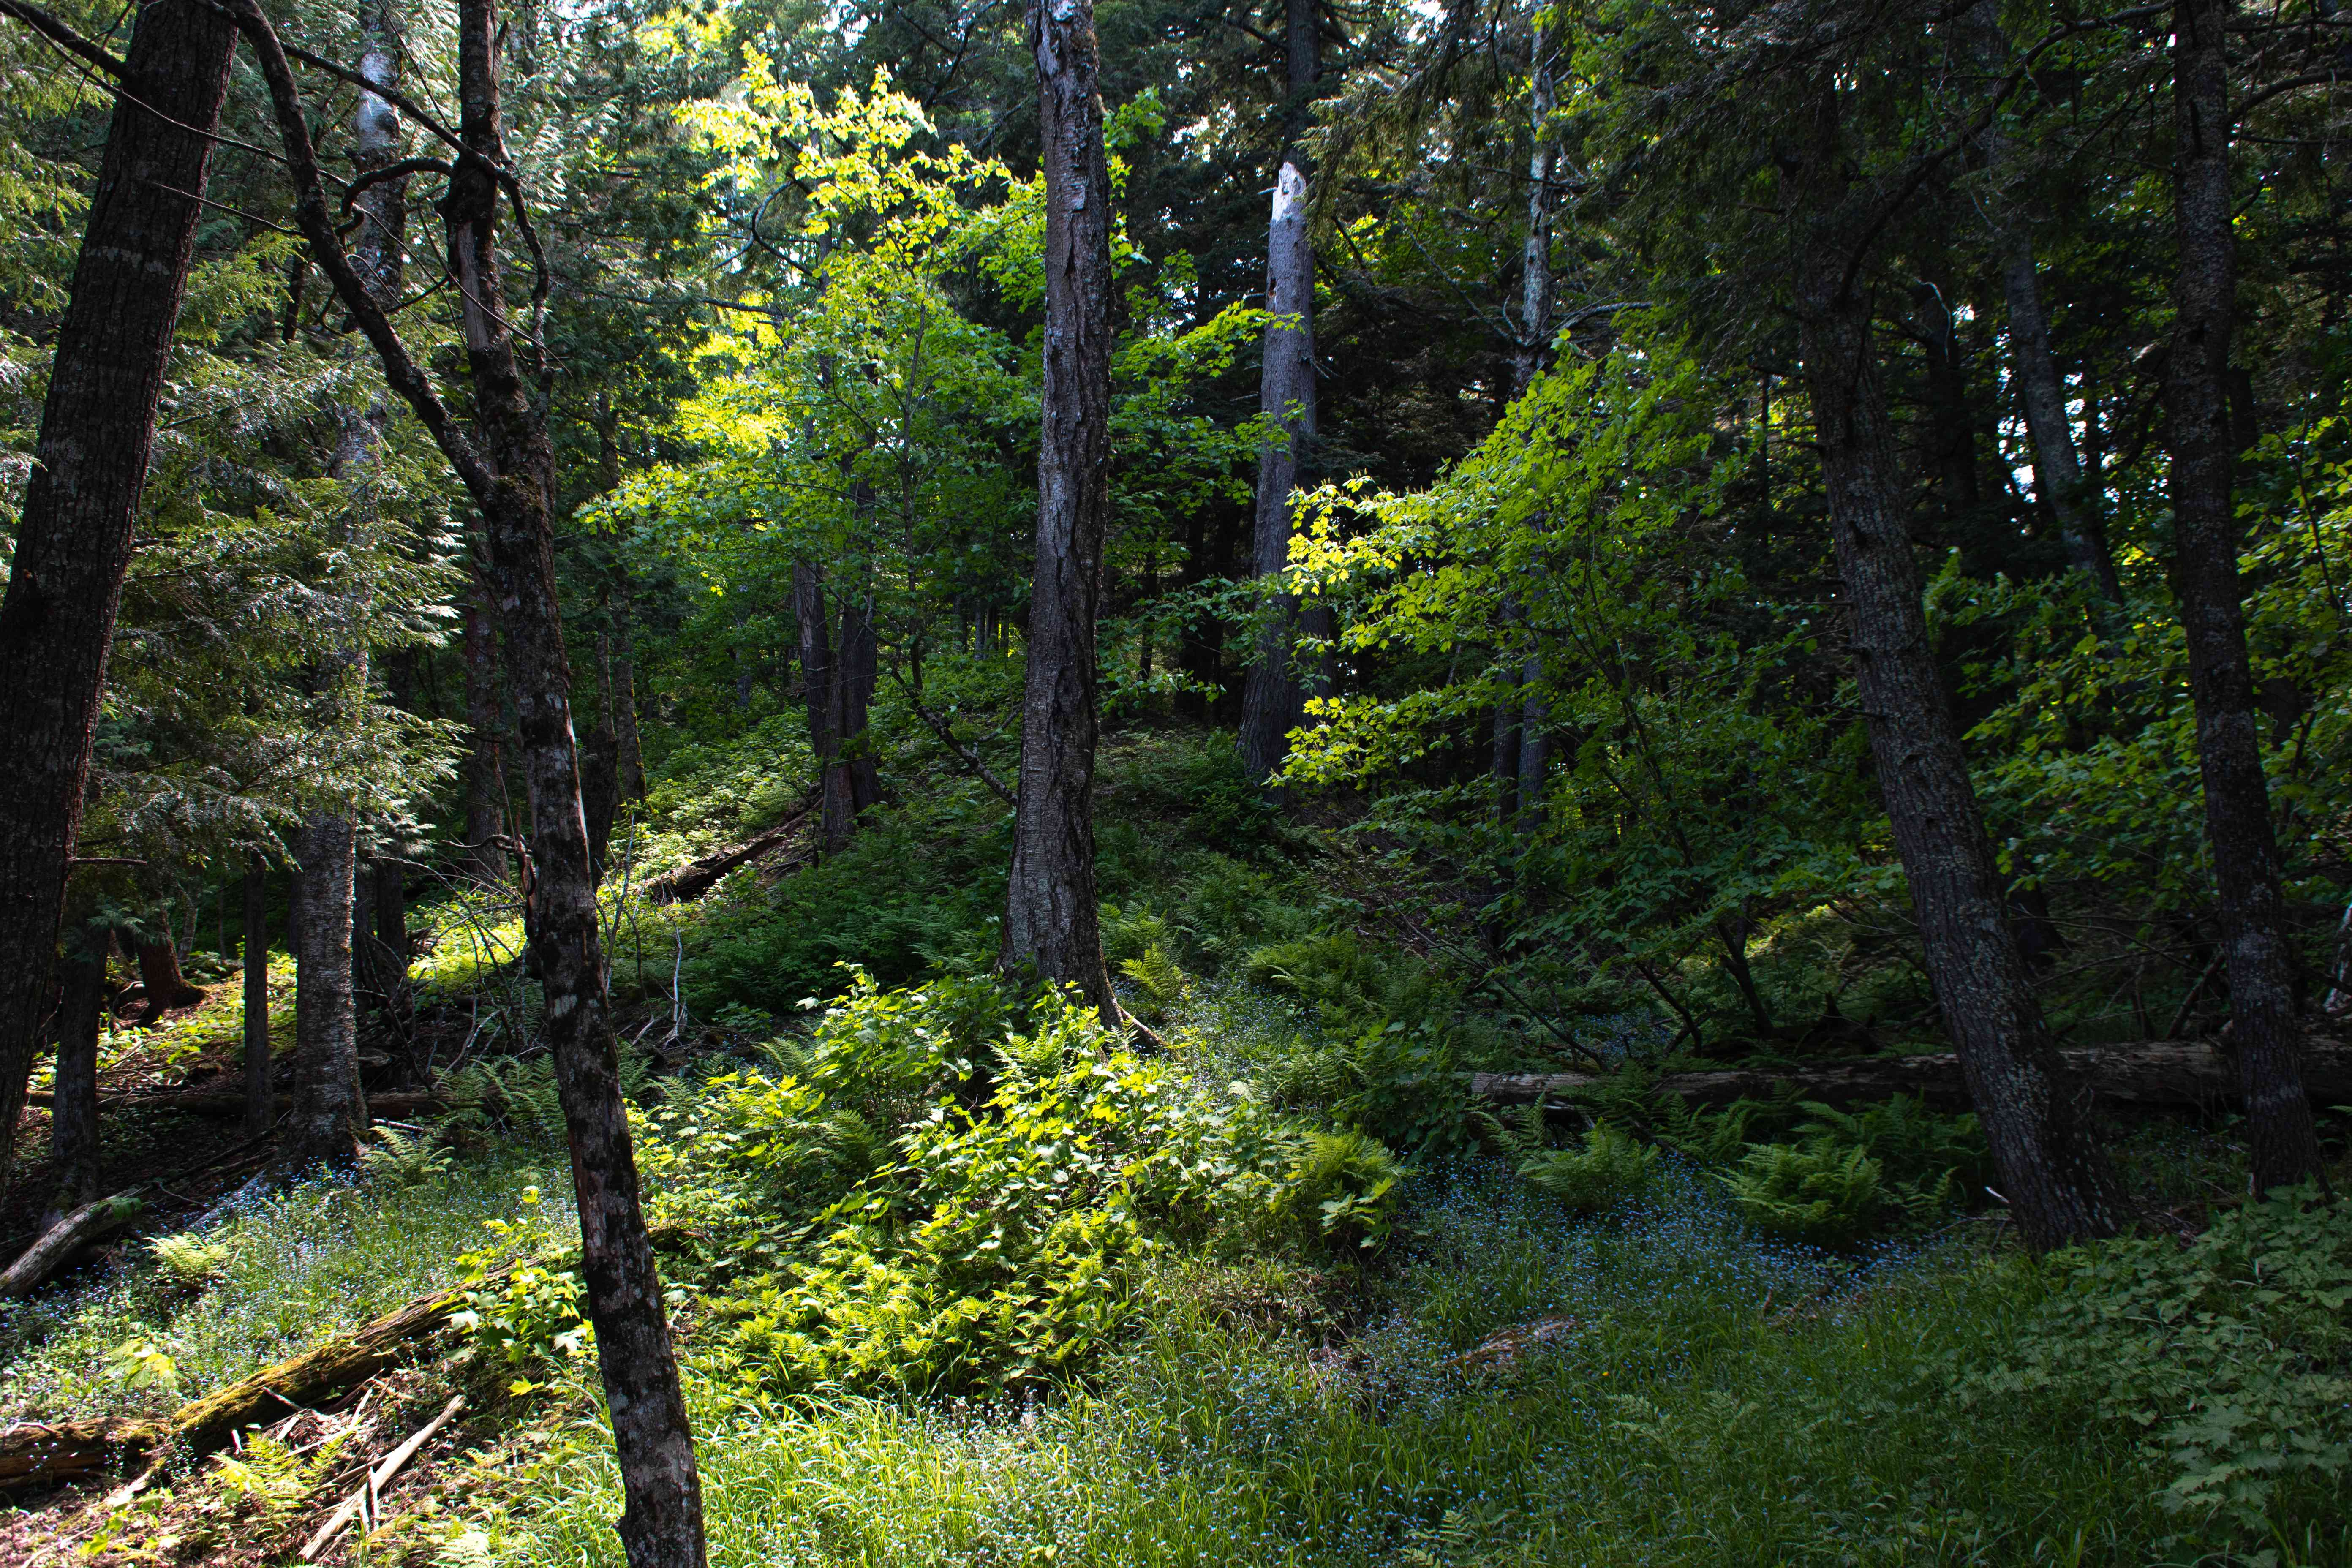 forest with dappled sunlight